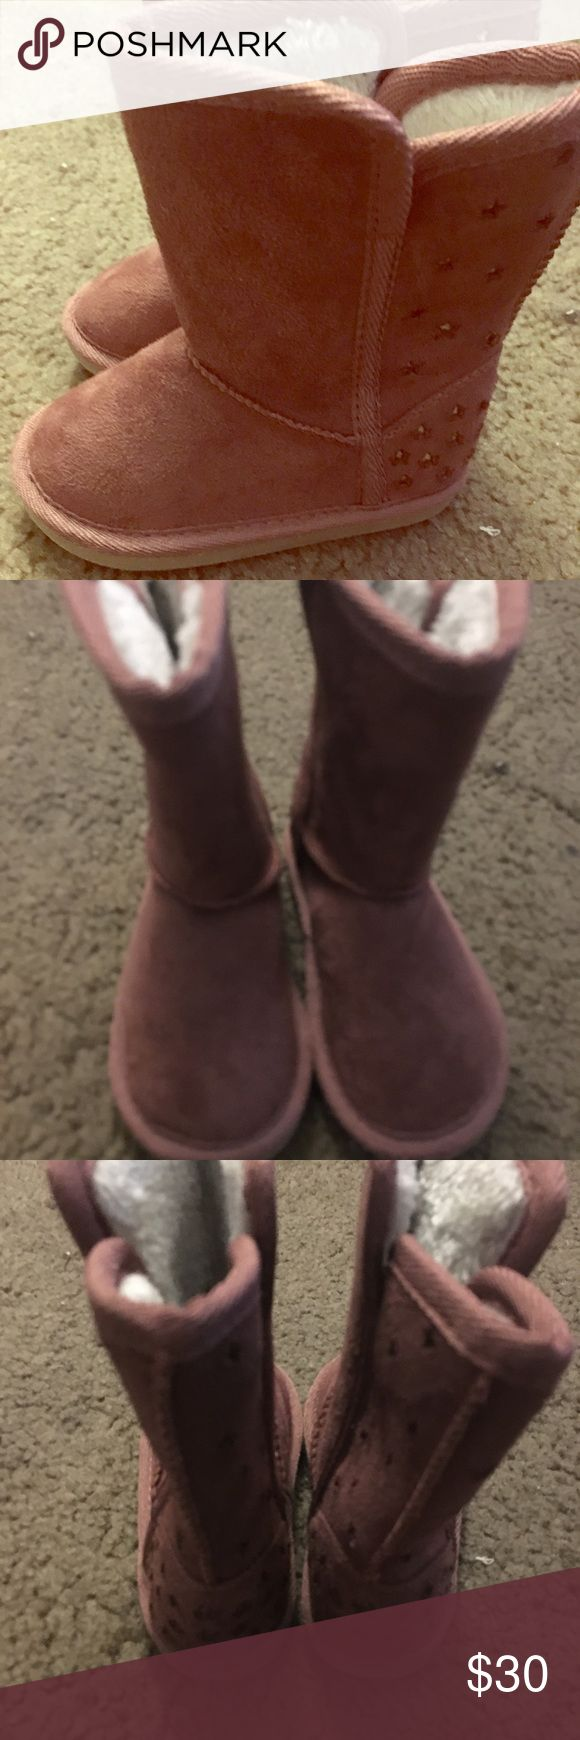 Old Navy Boots Pink Old Navy Toddler Boots Old Navy Shoes Boots